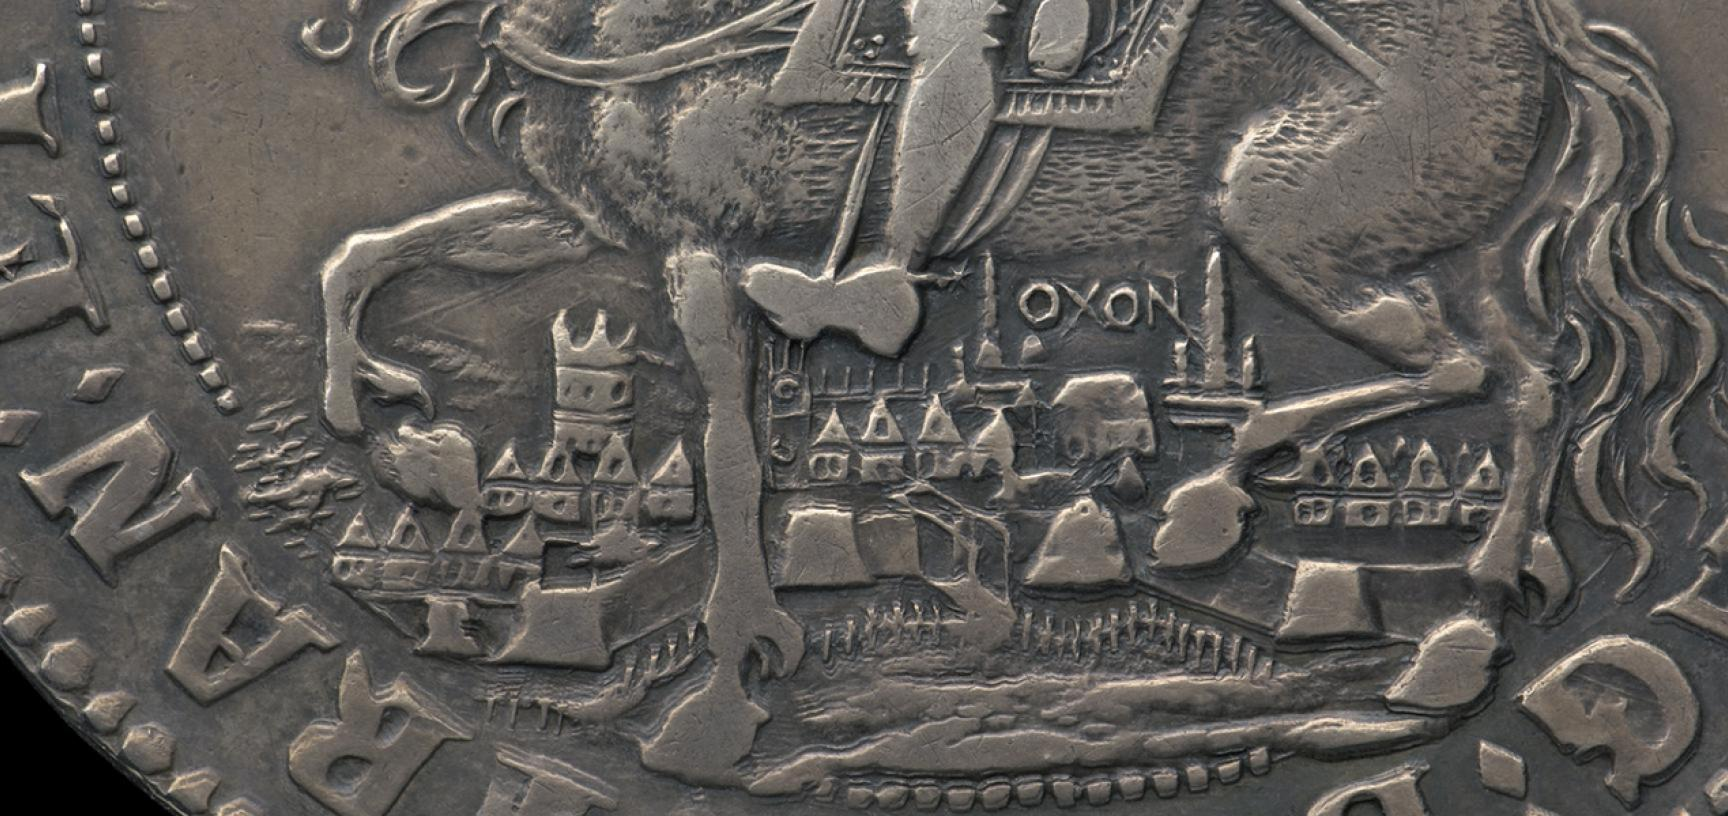 Oxford Crown from the Ashmolean collections (detail)